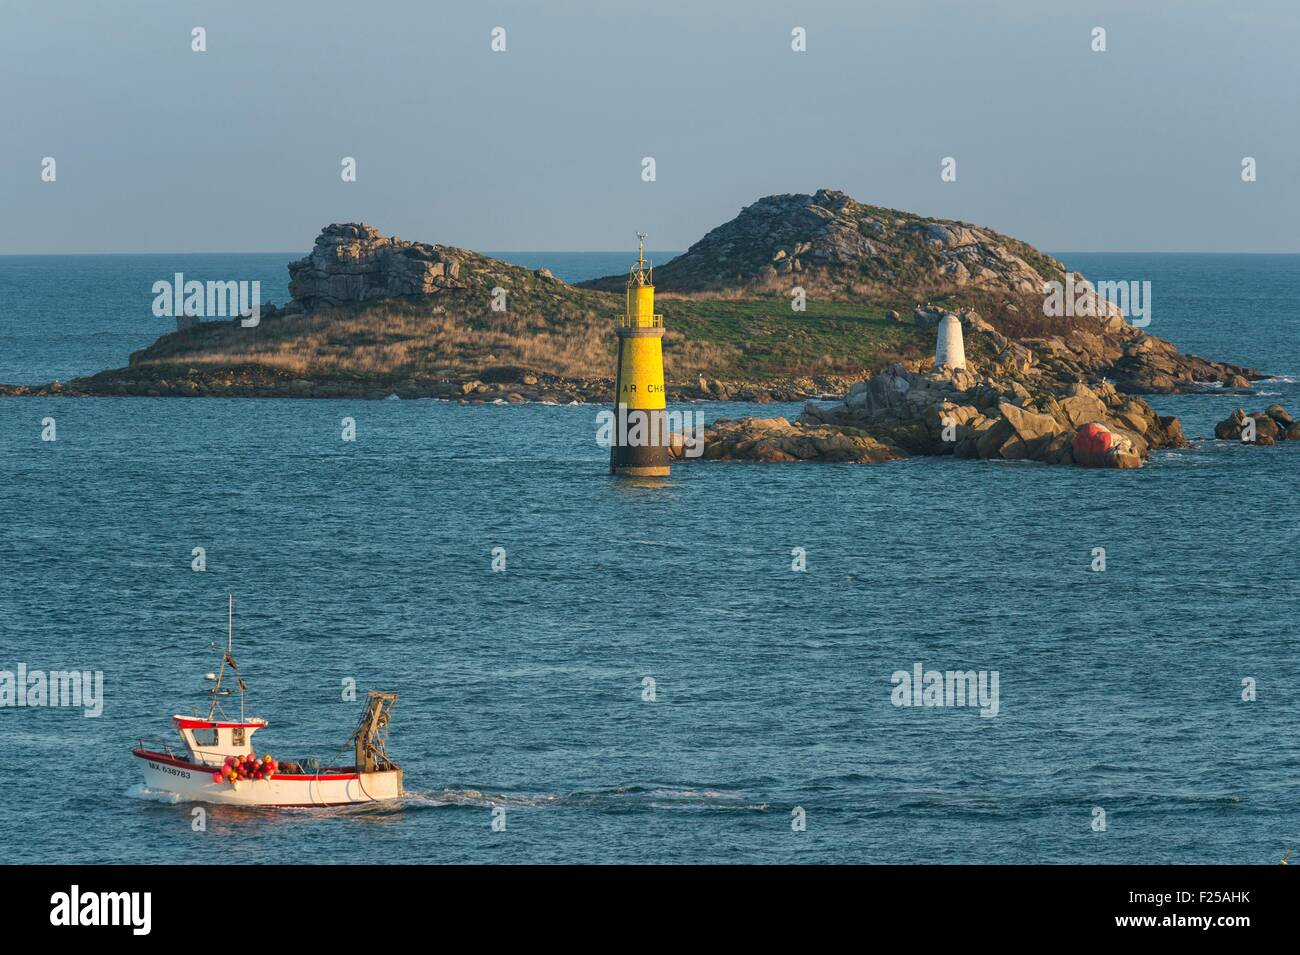 France, Finistere, Roscoff, islet of Ty Saozon and fish boat - Stock Image